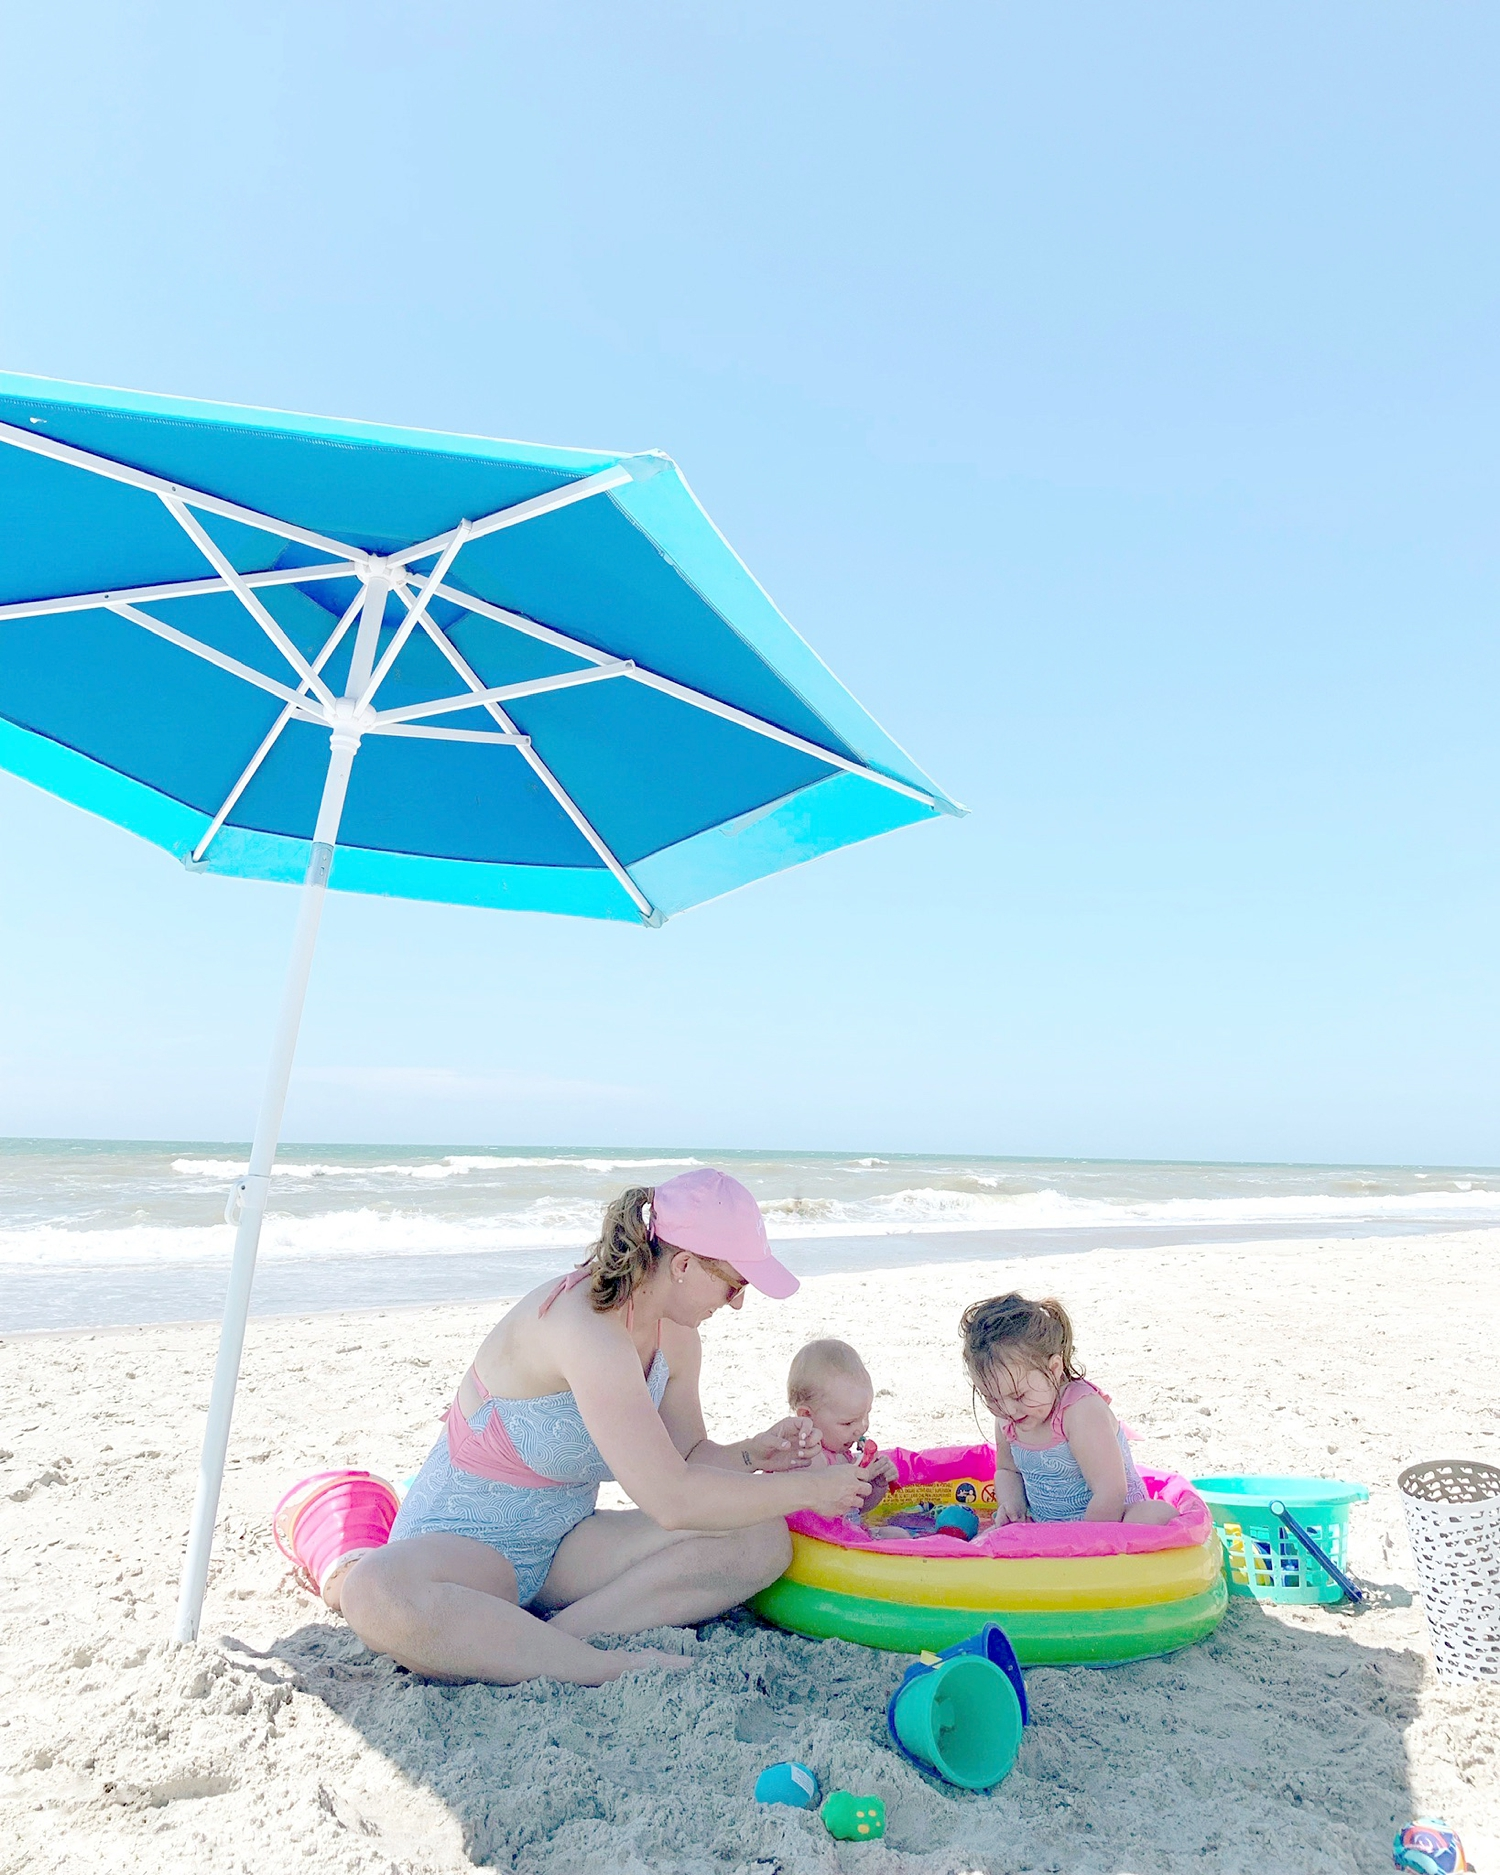 Having the small baby pool hands-down was the best thing we brought. So cheap and the best thing for toddlers because they can play in the water and sand without going on the ocean. I got ours at Big Lots for $5 but they sell them everywhere!